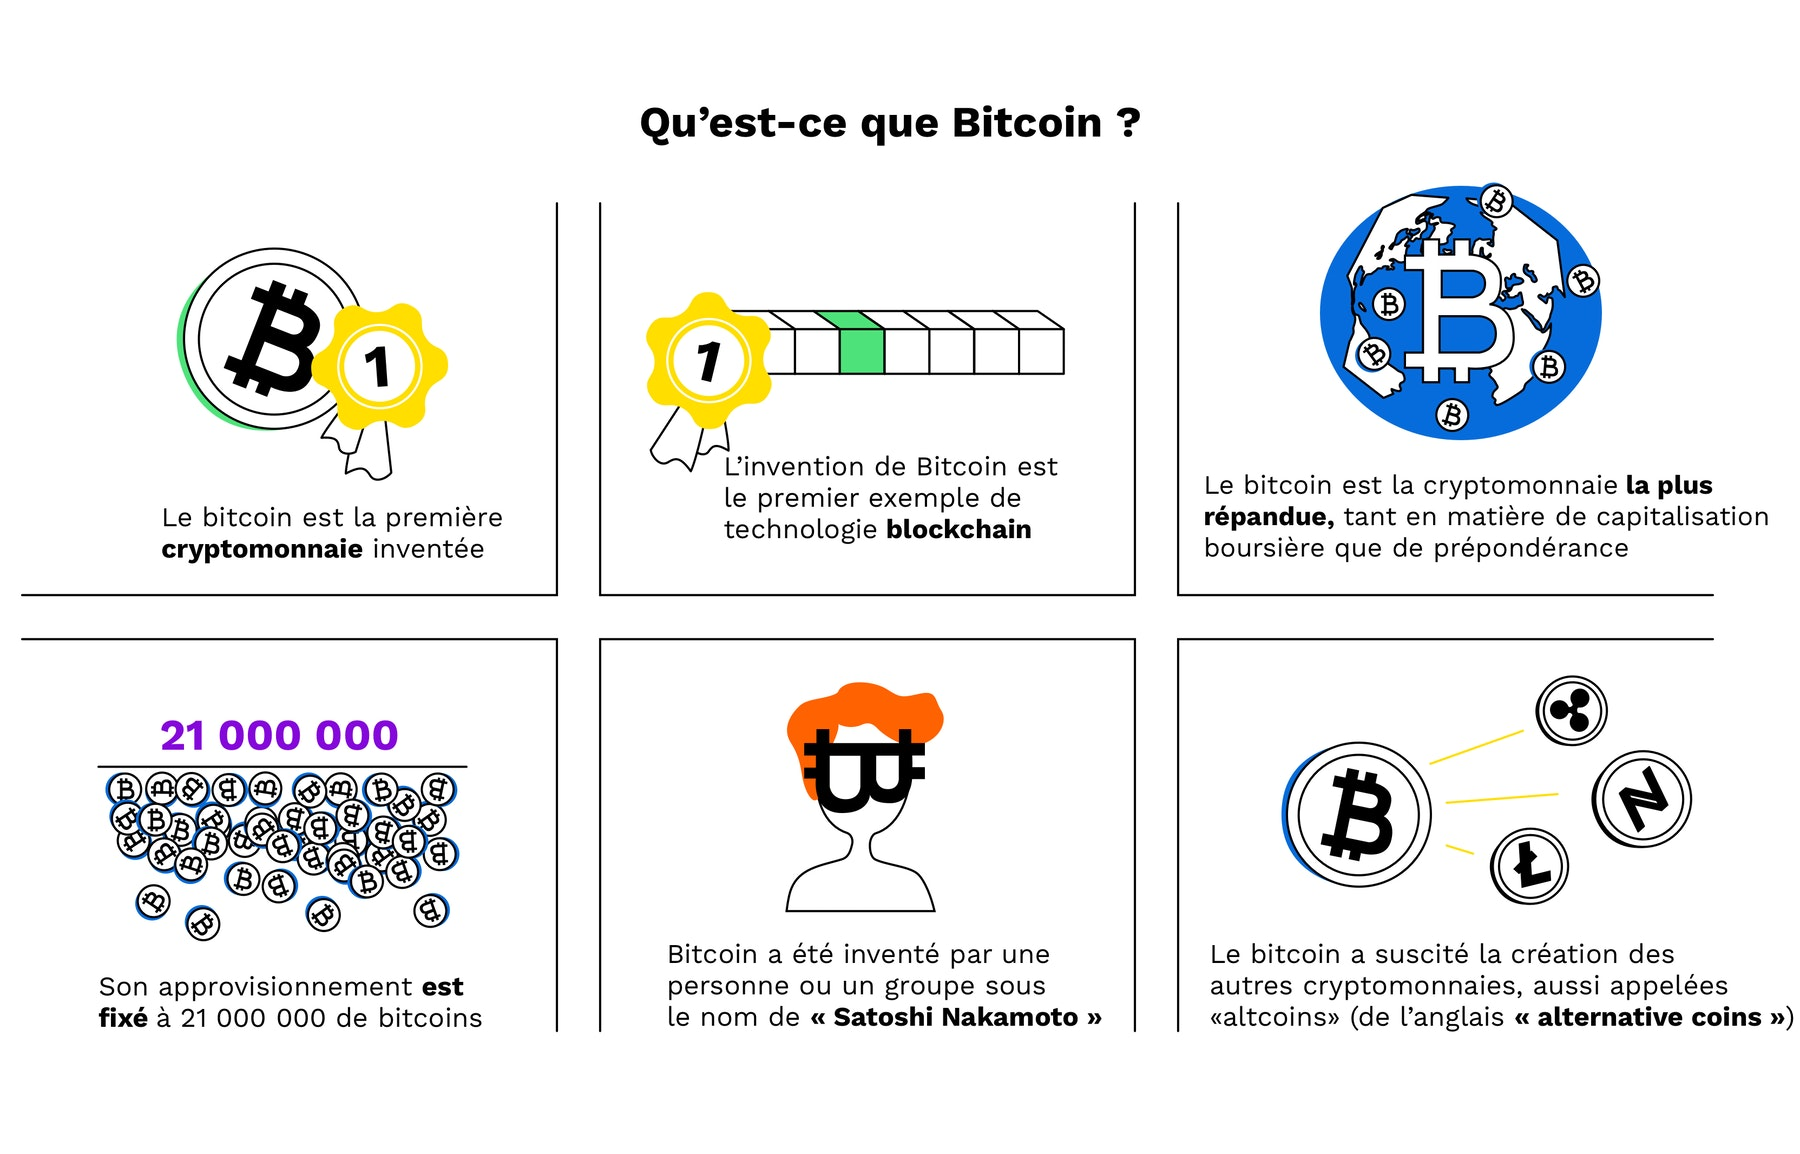 Sous emploi bitcoins ky derby early betting odds